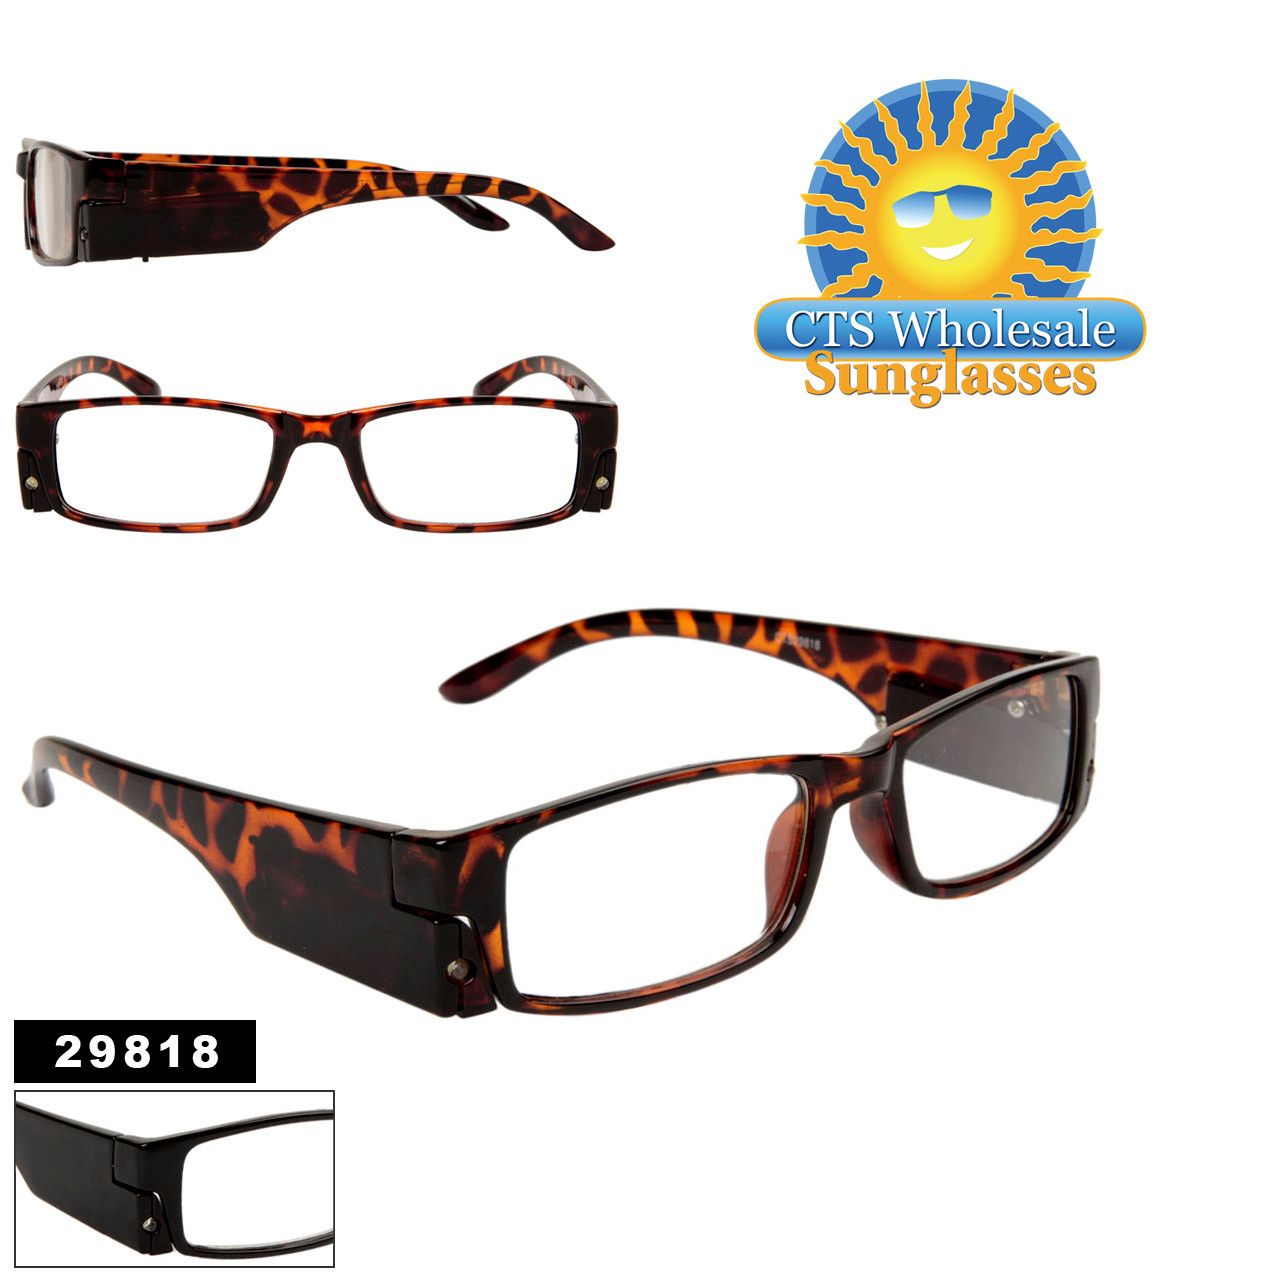 Lighted Reading Glasses Wholesale